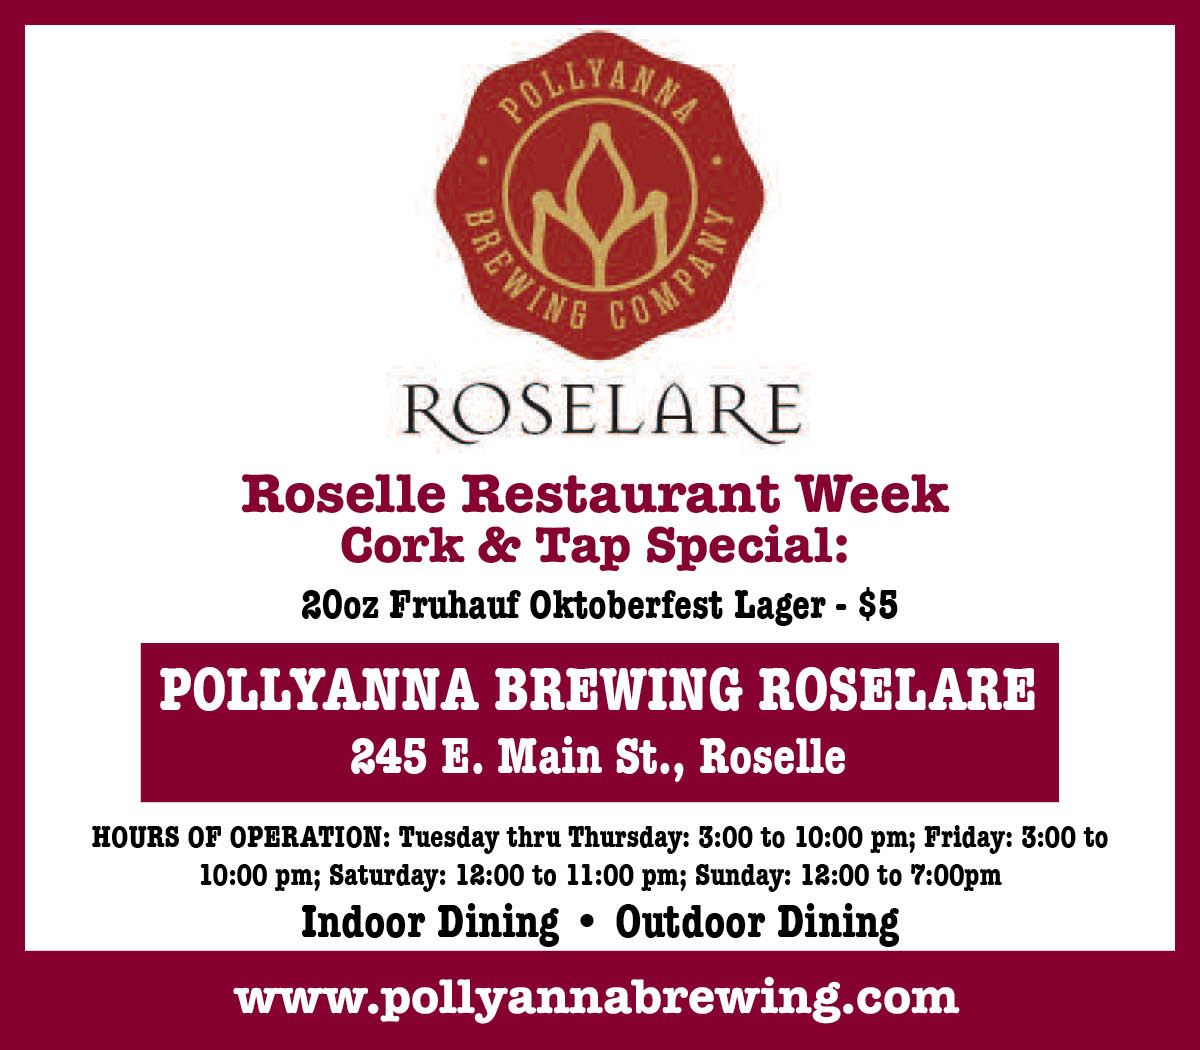 Pollyanna Opens in new window